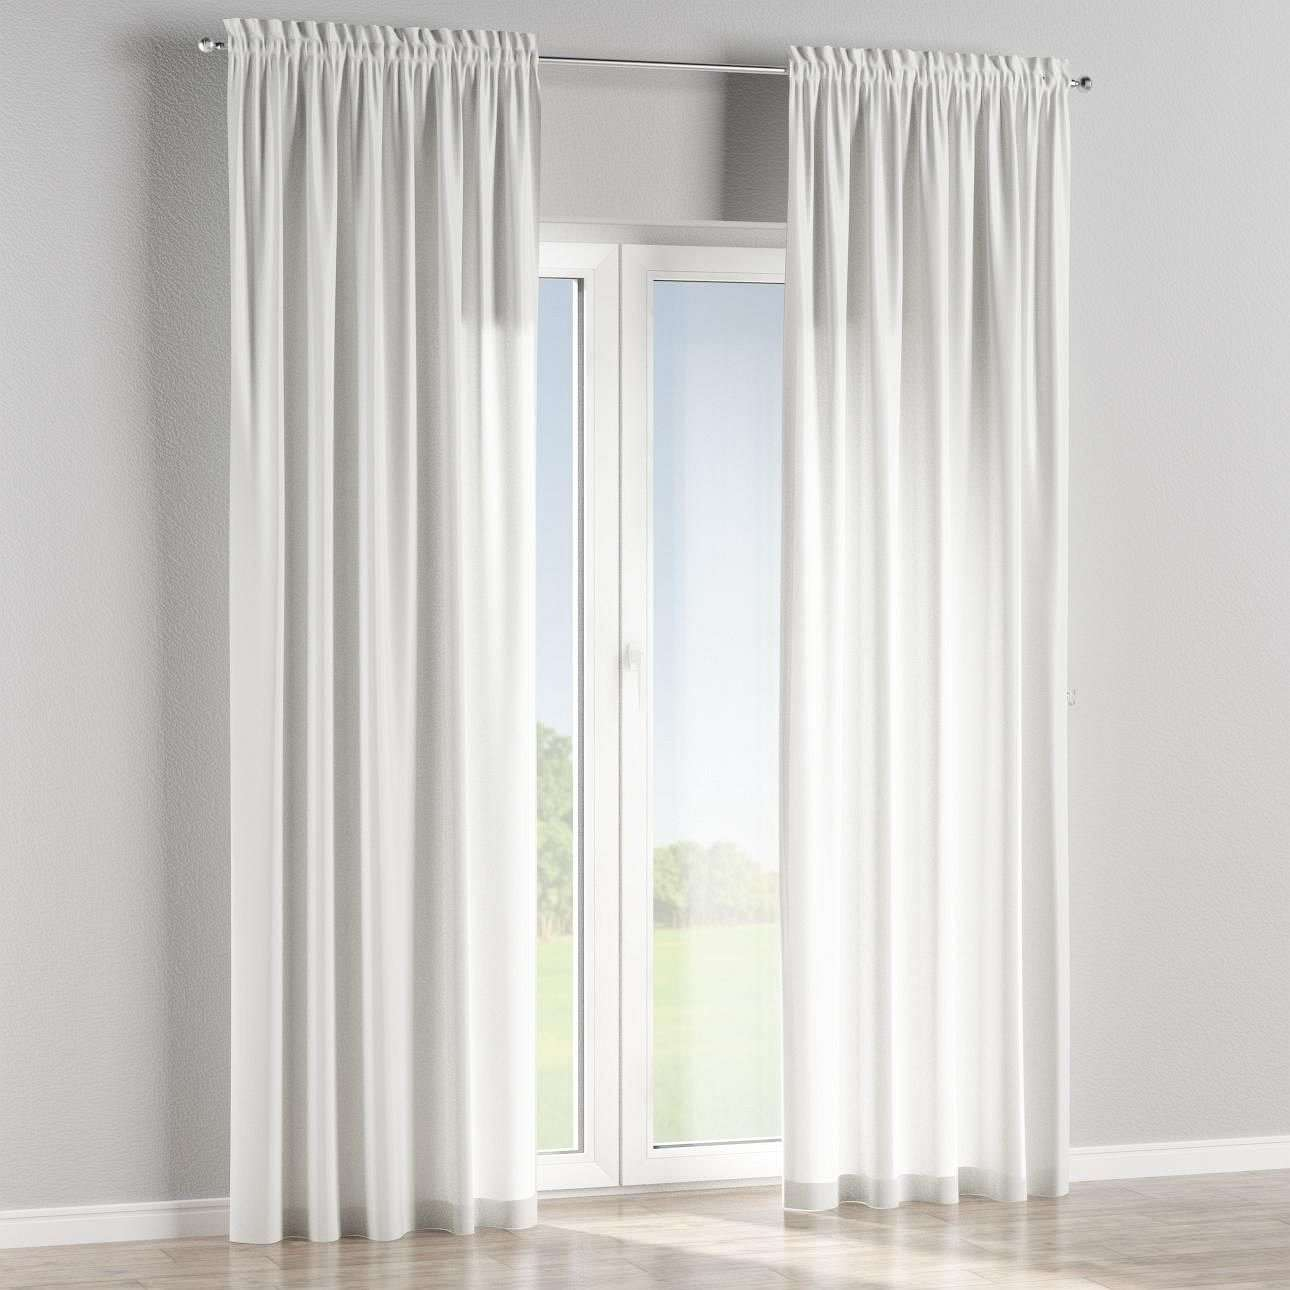 Slot and frill curtains in collection Arcana, fabric: 102-02